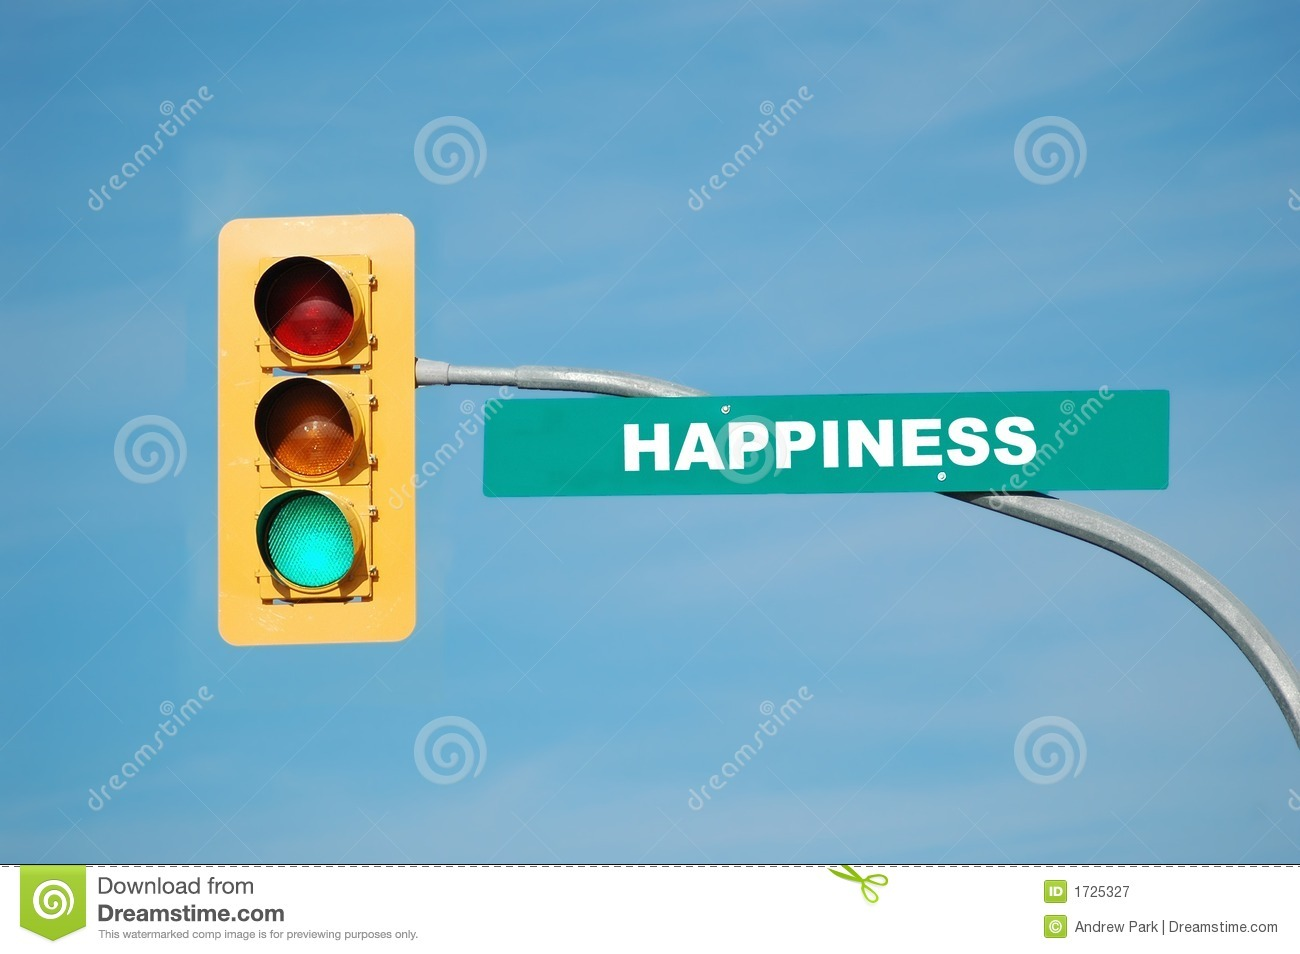 Green traffic light with the word happiness written on the sign.